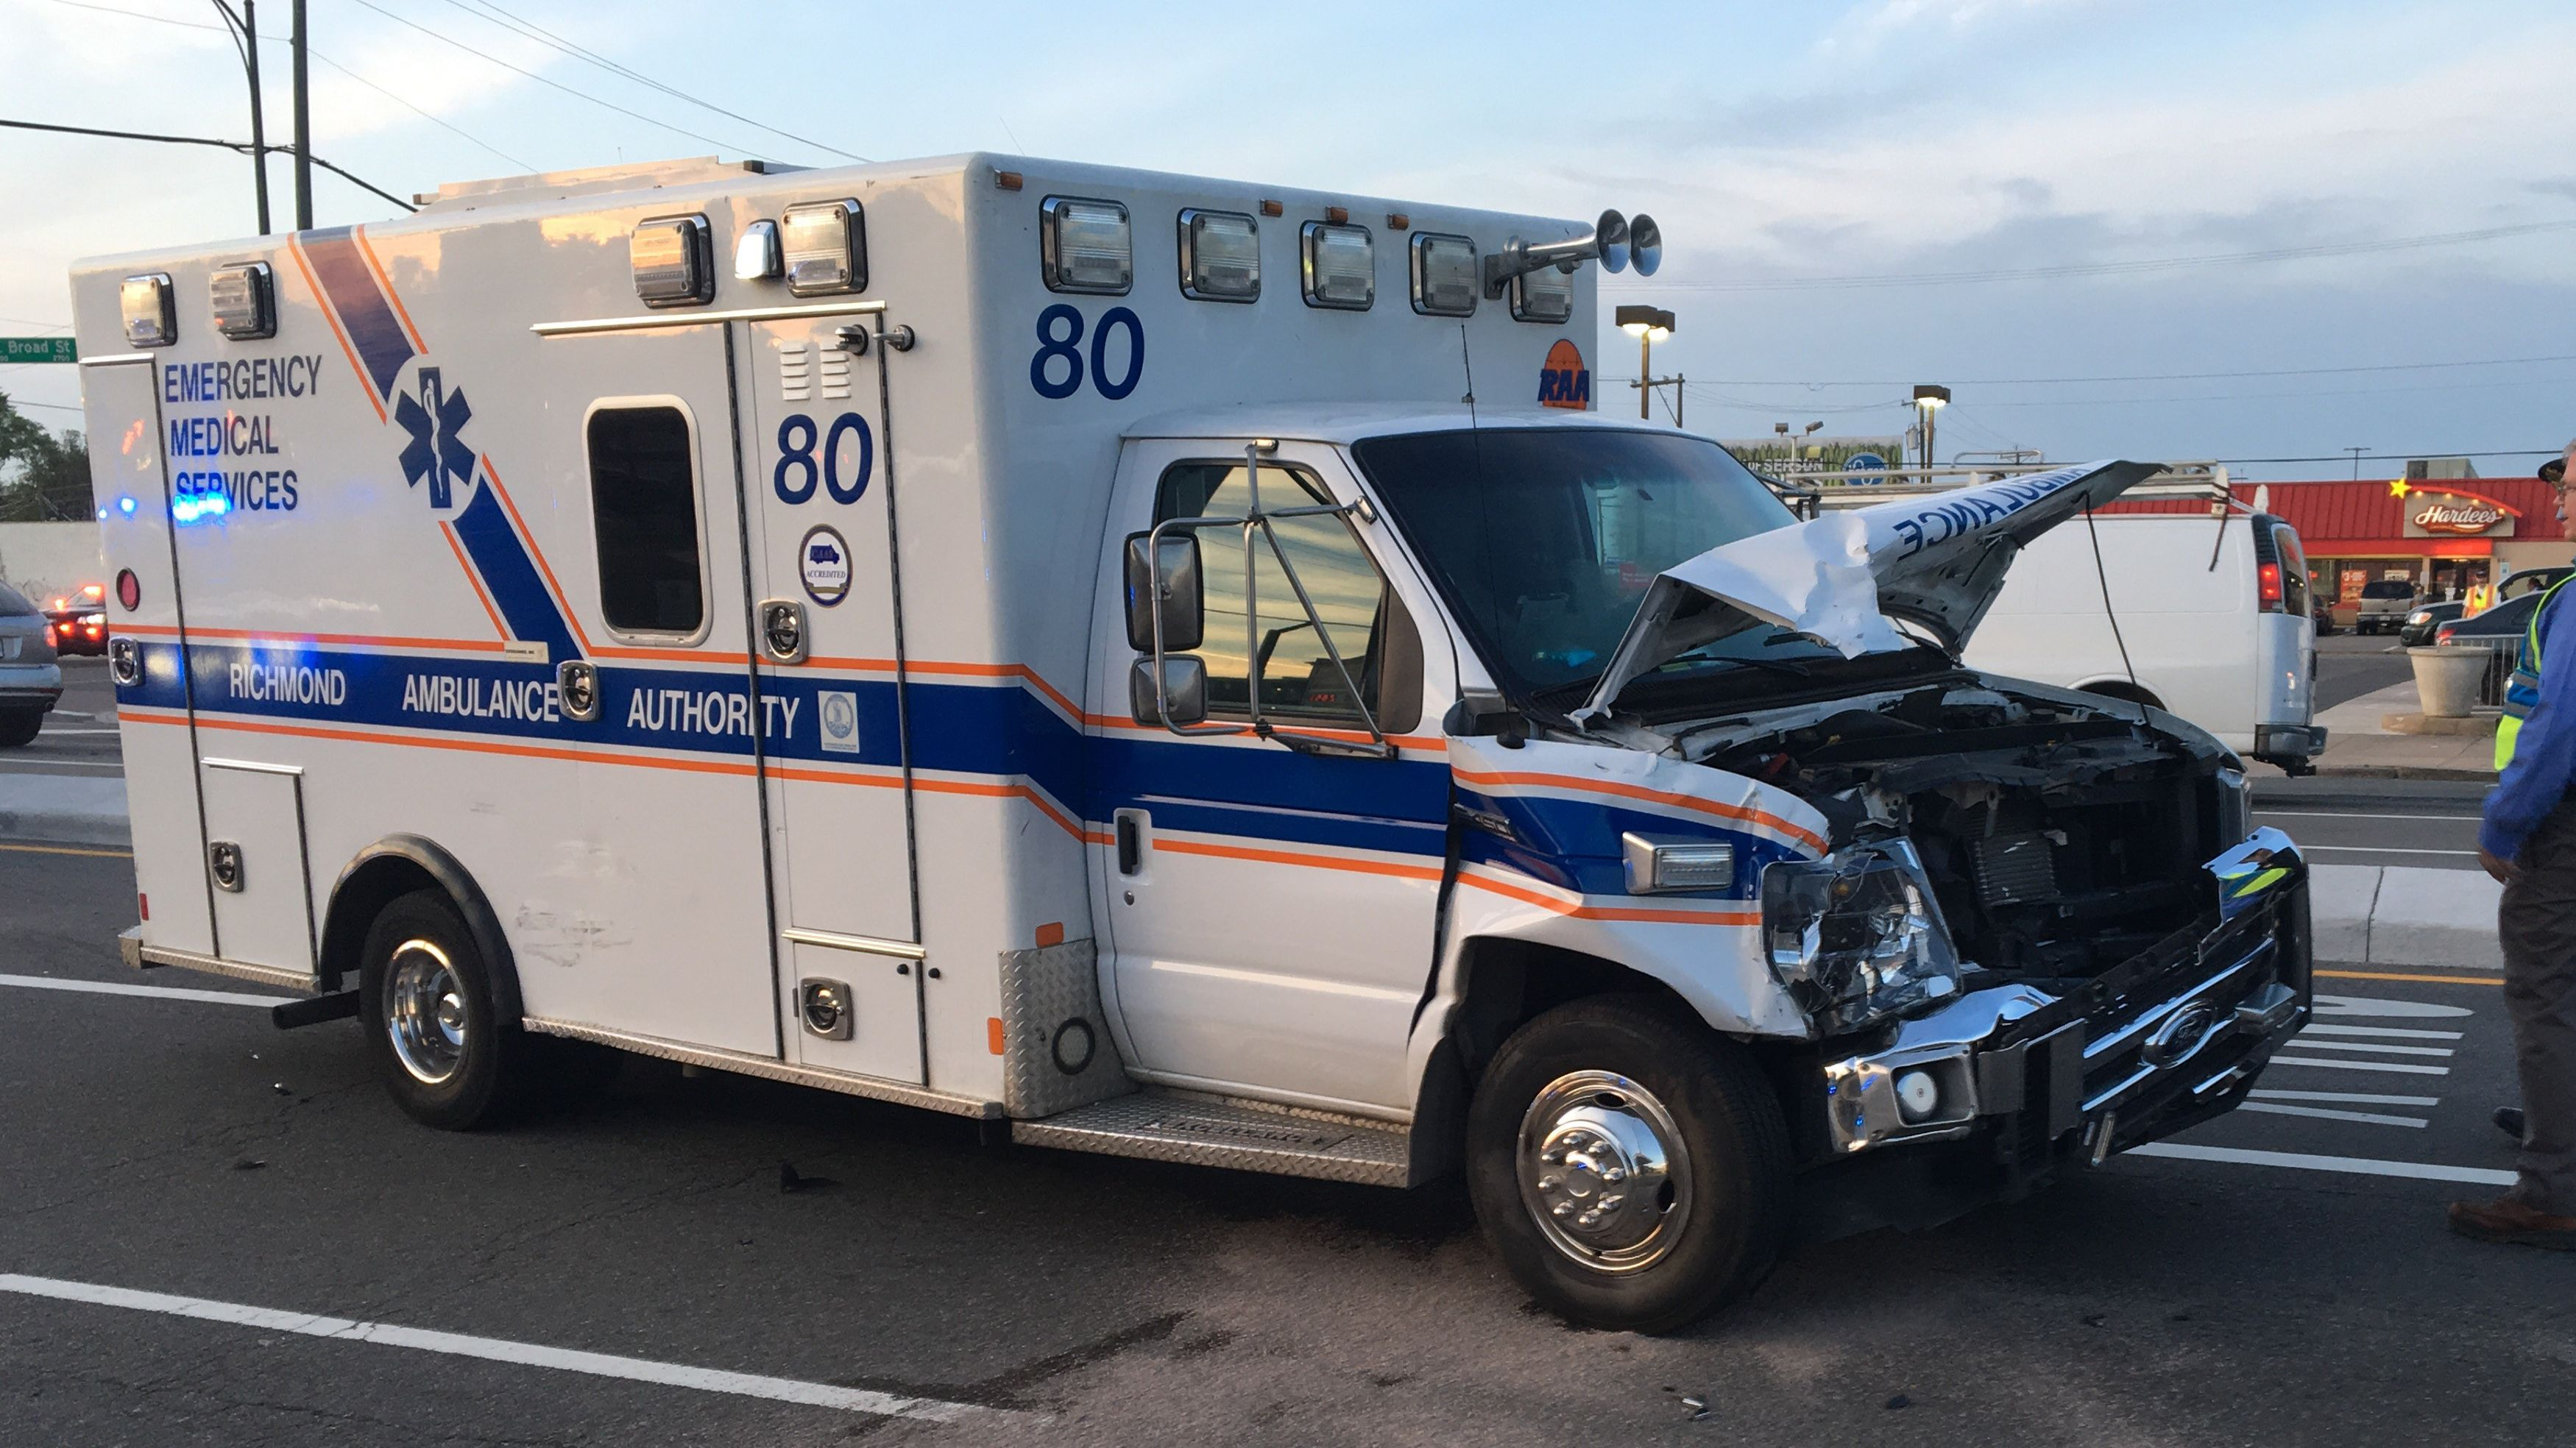 4 injured in crash involving Richmond ambulance